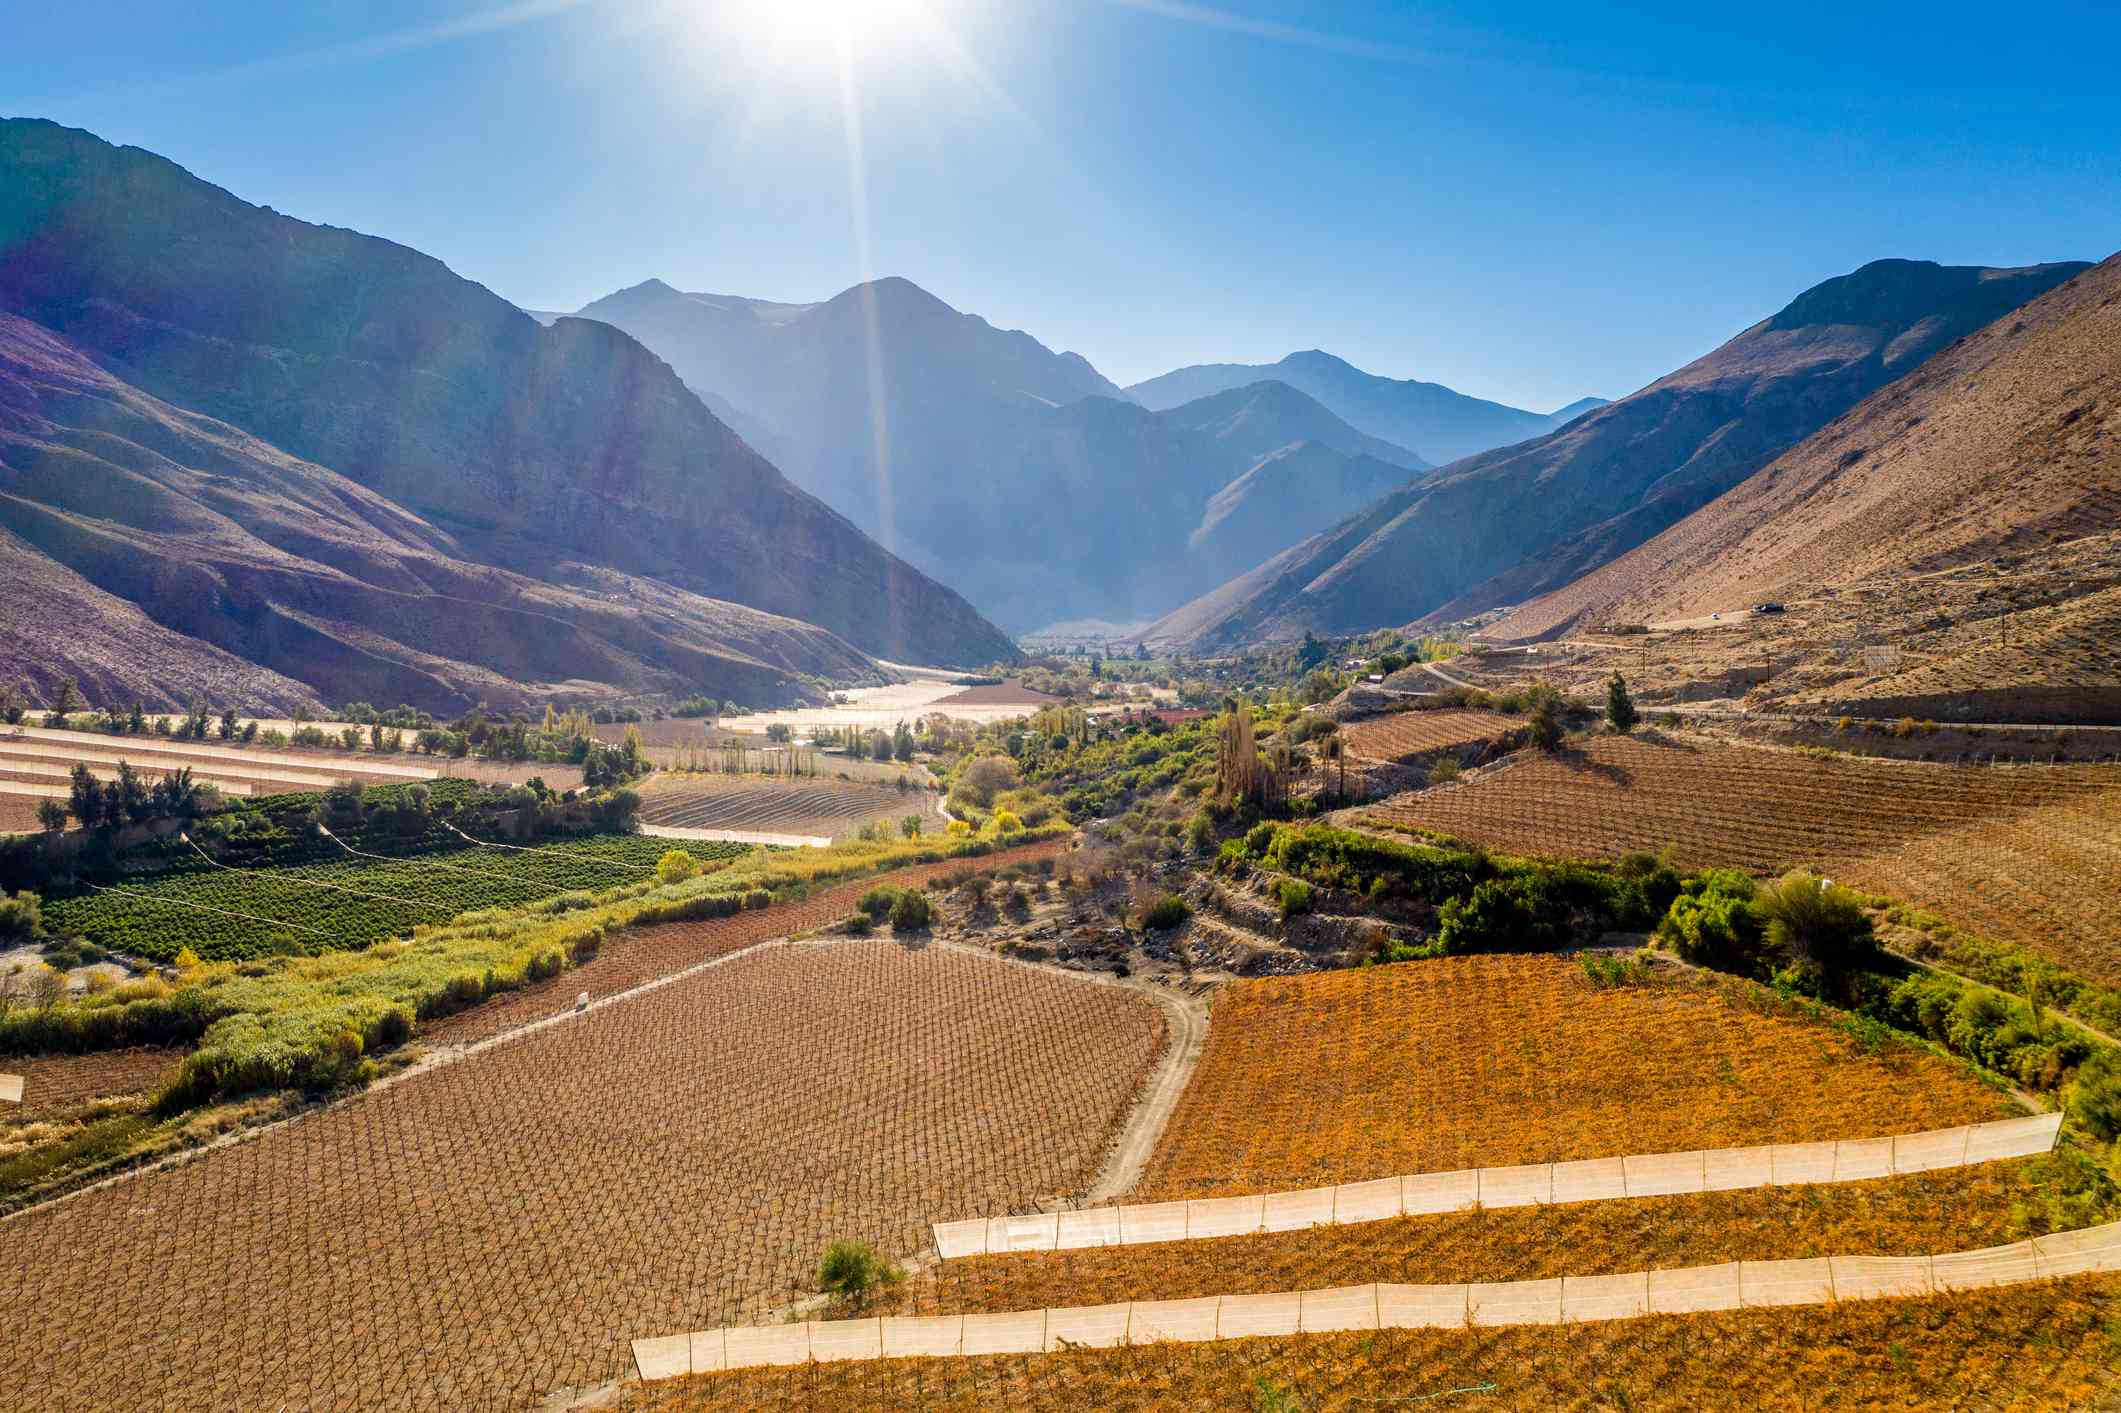 Fields and farmland for the growth of grapes for Pisco production nestled in the mountains of the Elqui Pisco Valley, Coquimbo, Chile.